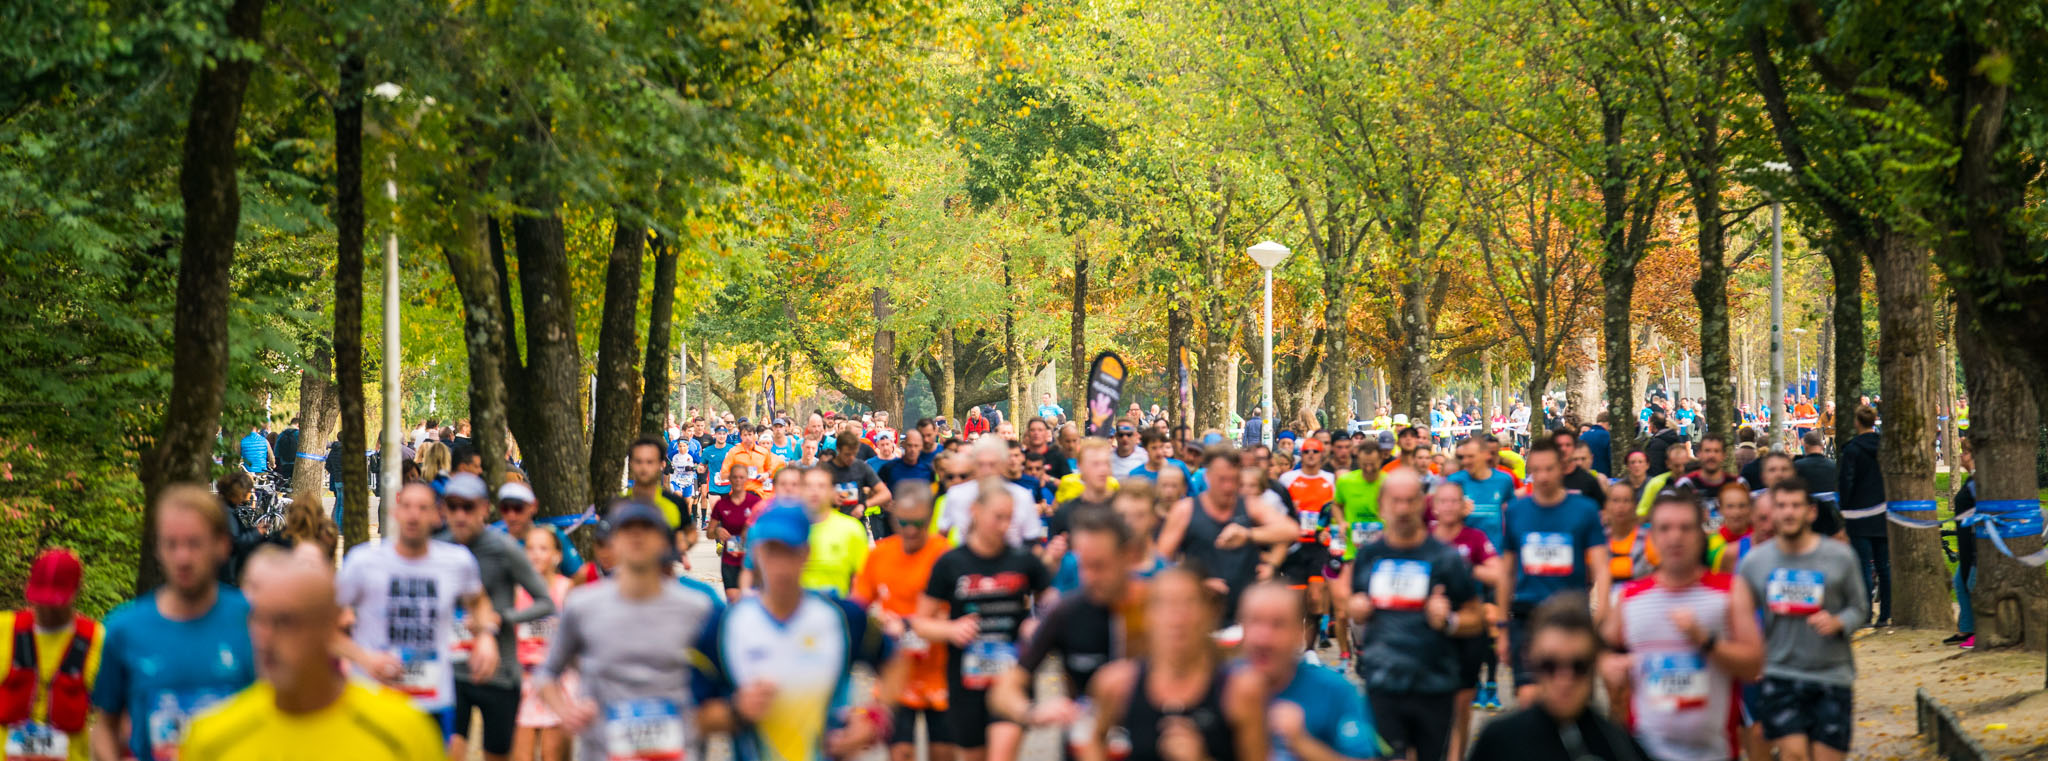 Fonkelnieuw TCS Amsterdam Marathon 2020 | Sports Tours international KA-36